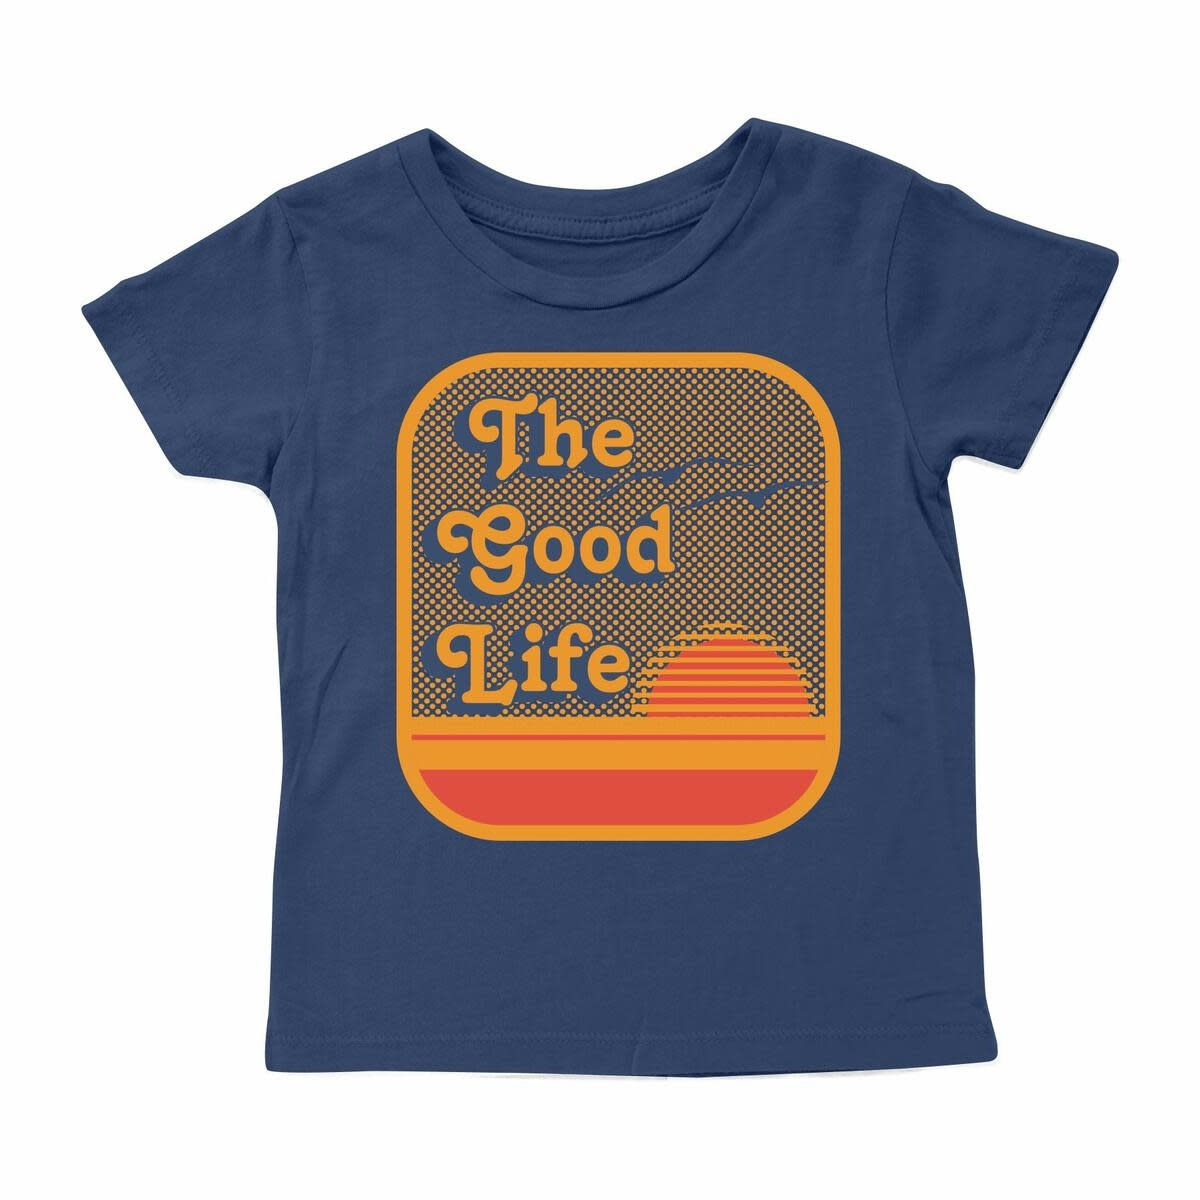 Tiny Whales The Good Life Baby Tee - Navy